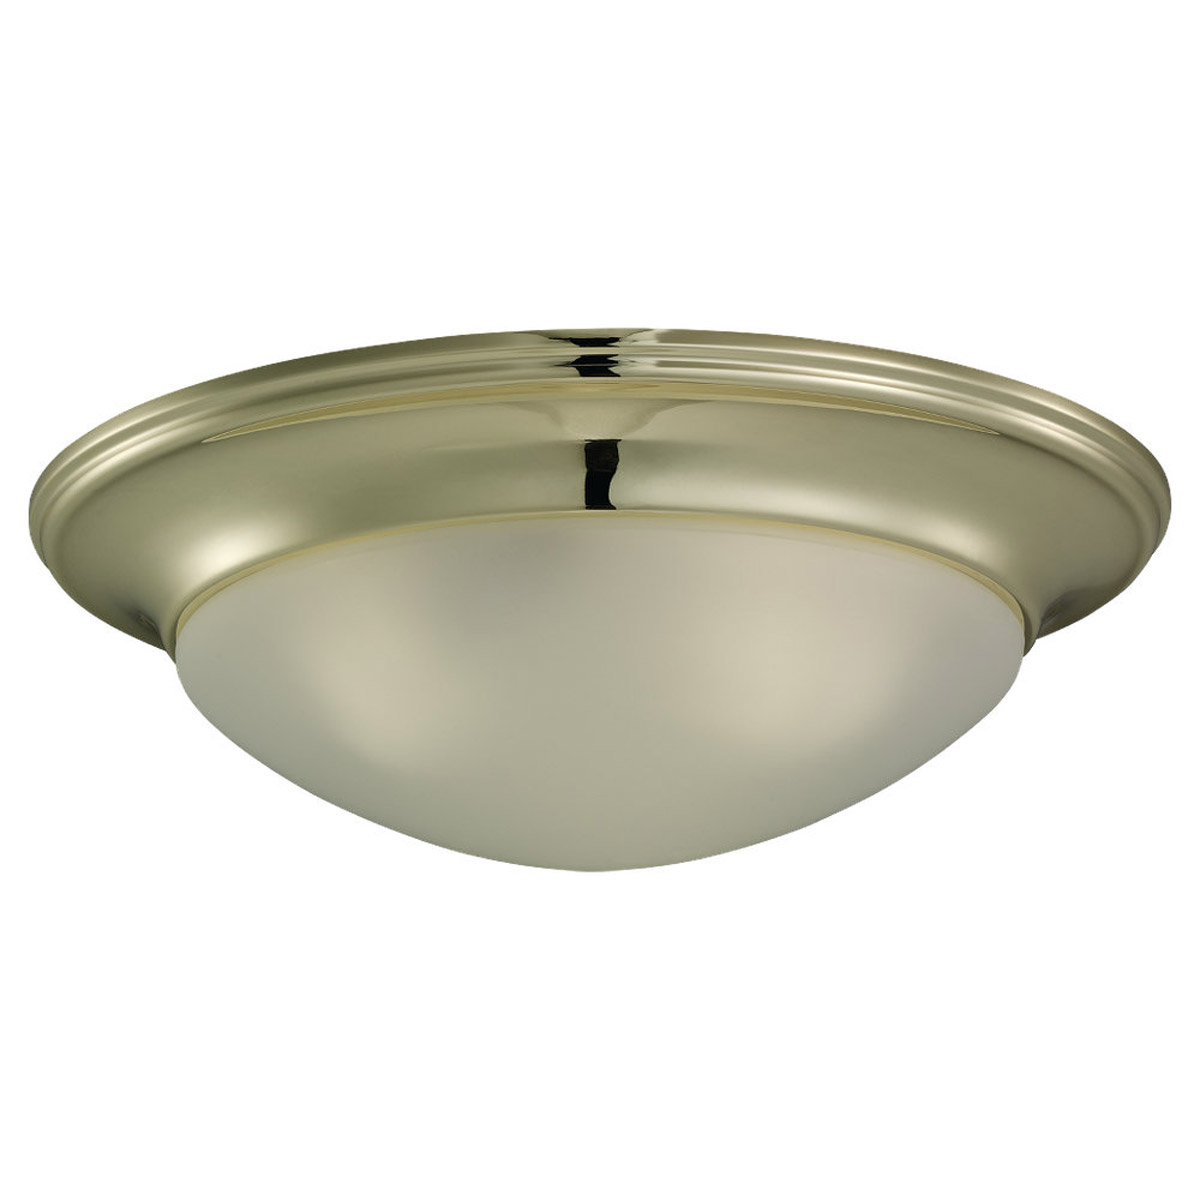 Sea Gull Lighting Nash 3 Light Fluorescent Flush Mount in Polished Brass 79436BLE-02 photo